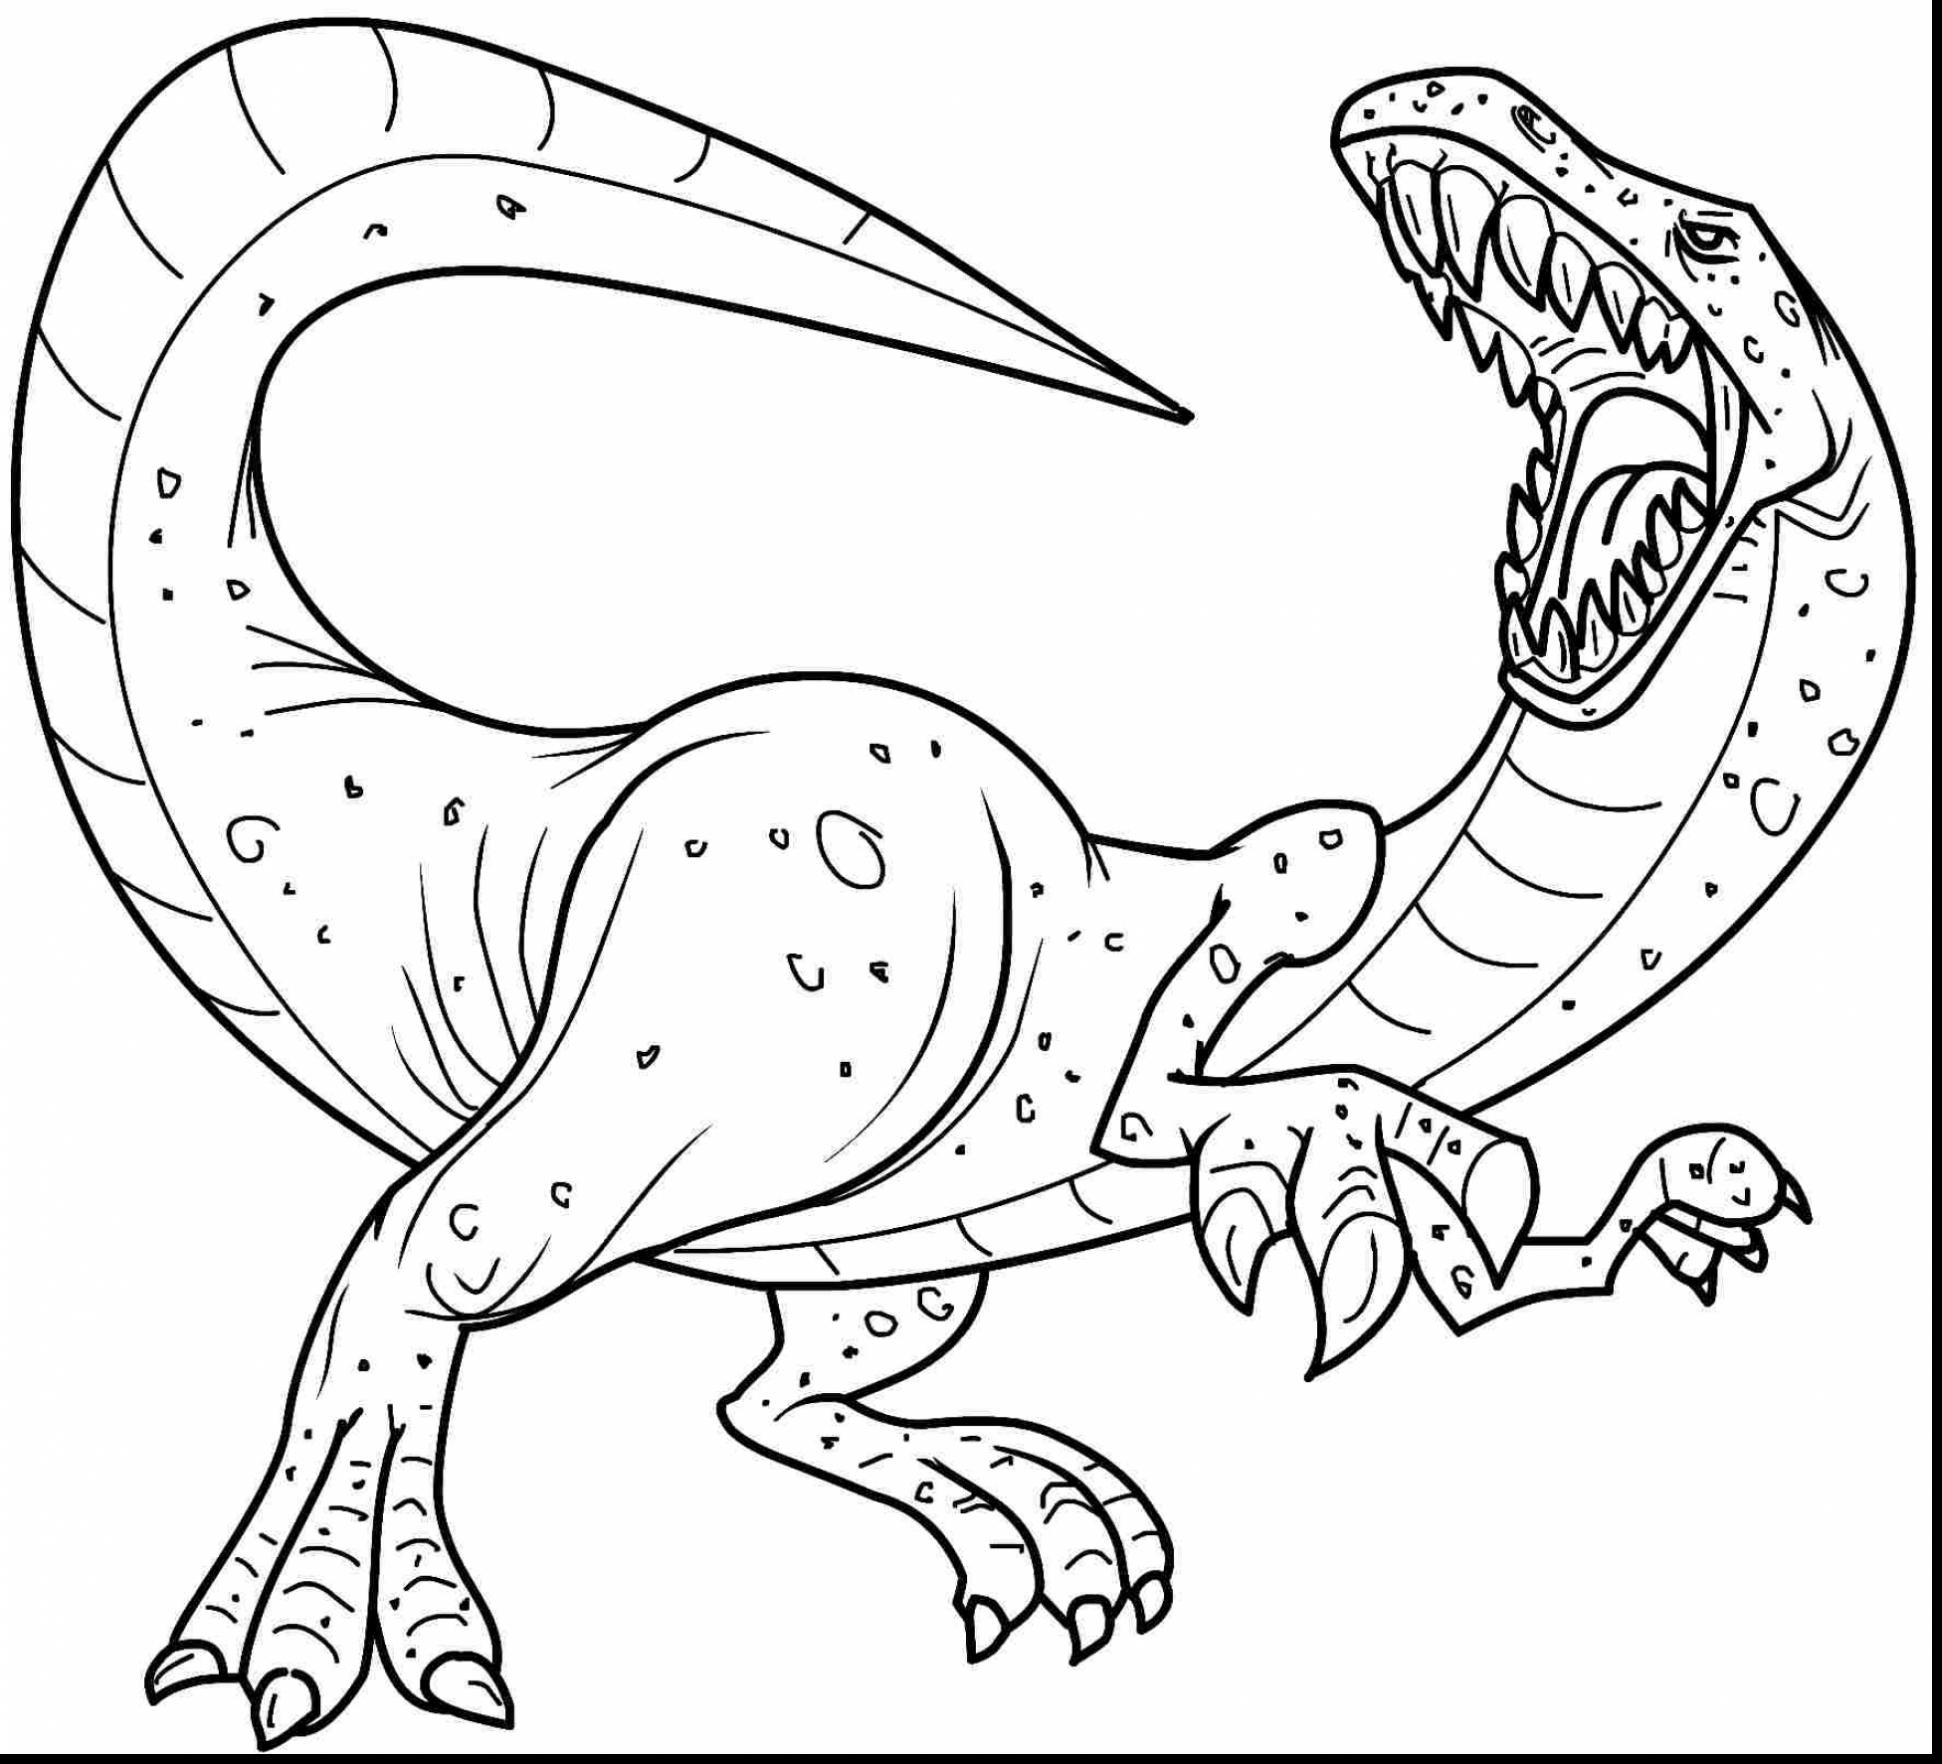 Scary Dinosaur Coloring Pages Australia Flag Coloring Page Flag Australia Flags Coloring Pages